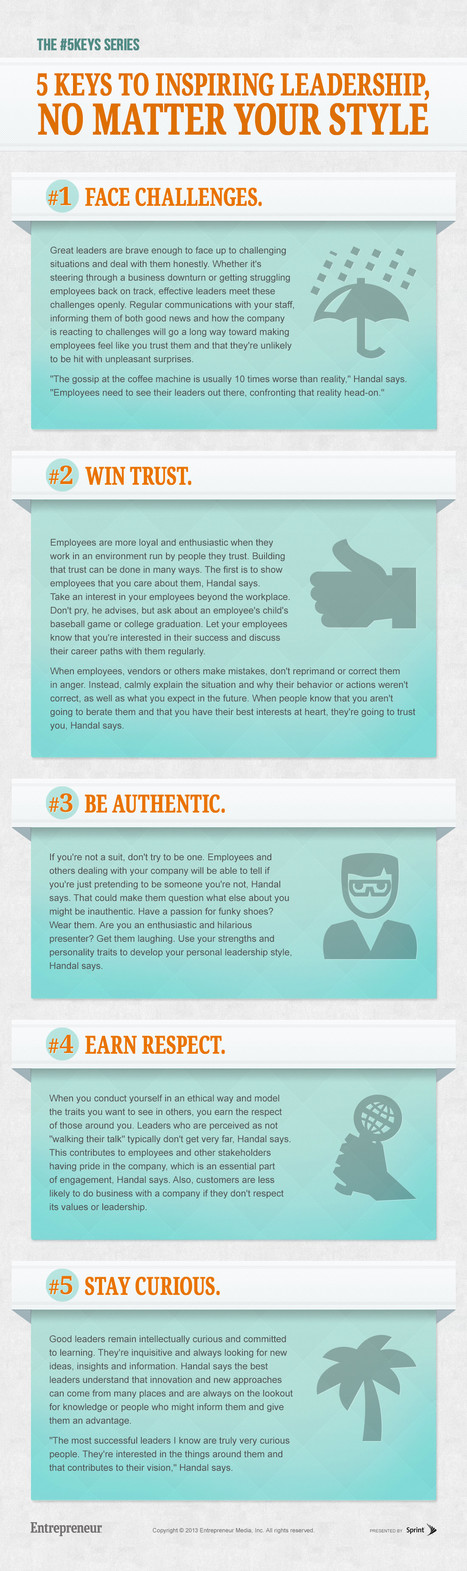 5 Keys to Inspiring Leadership, No Matter Your Style [Infographic] | Moving Education Forward | Scoop.it